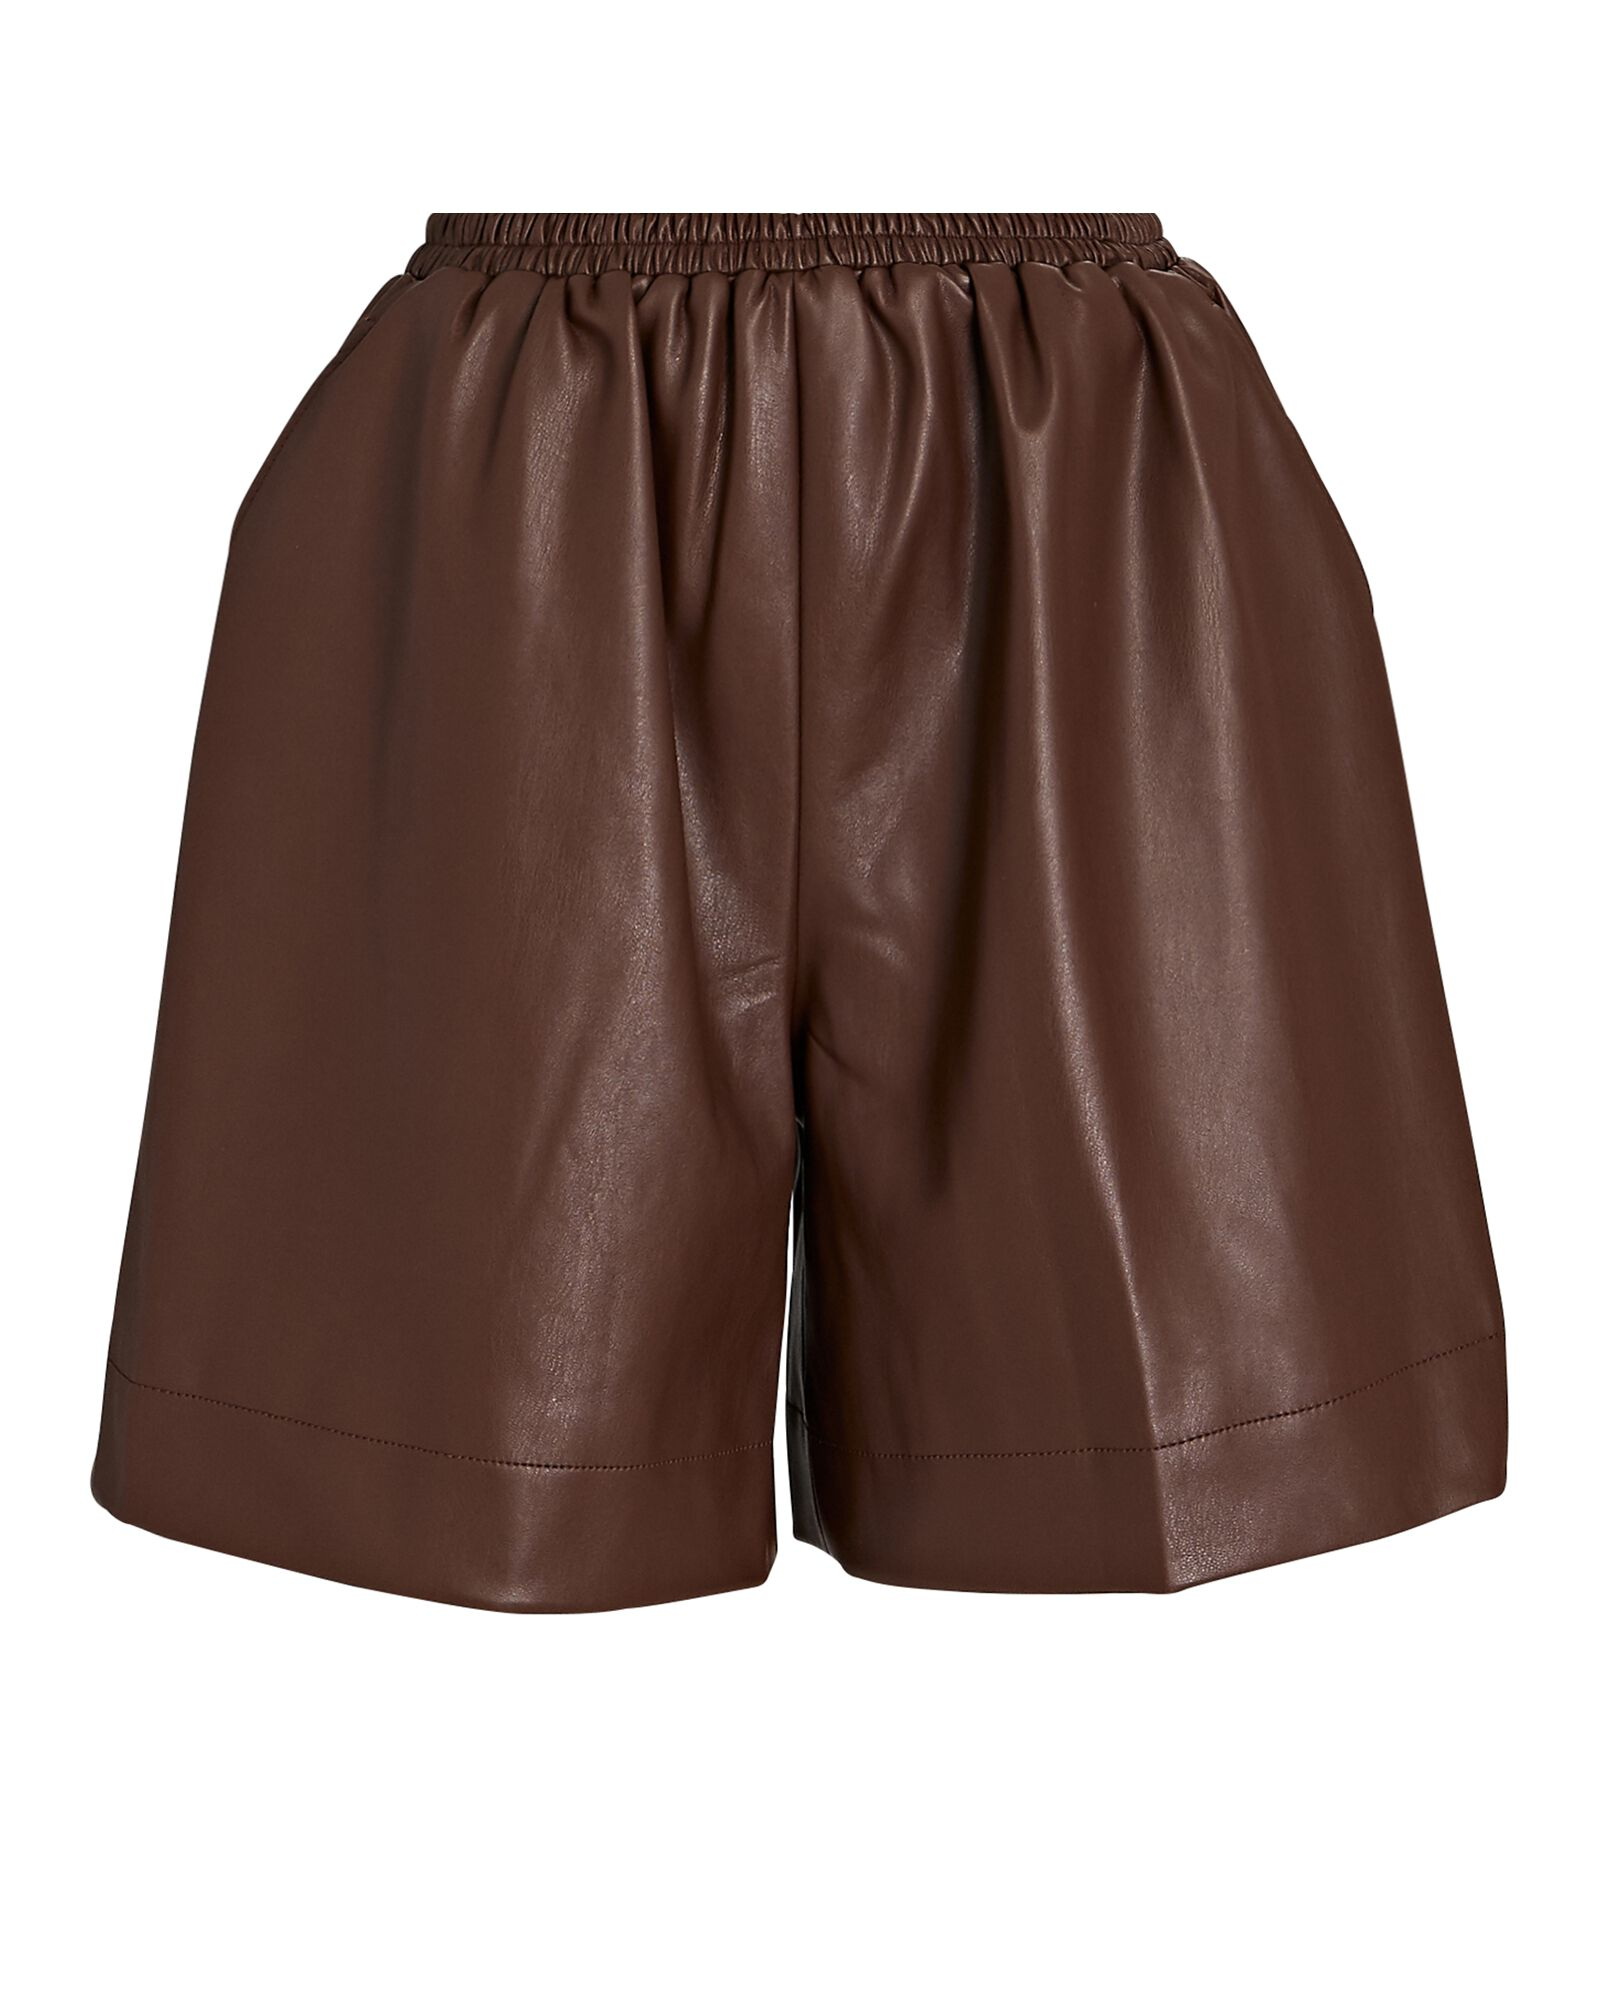 Clark Vegan Leather Shorts, BROWN, hi-res